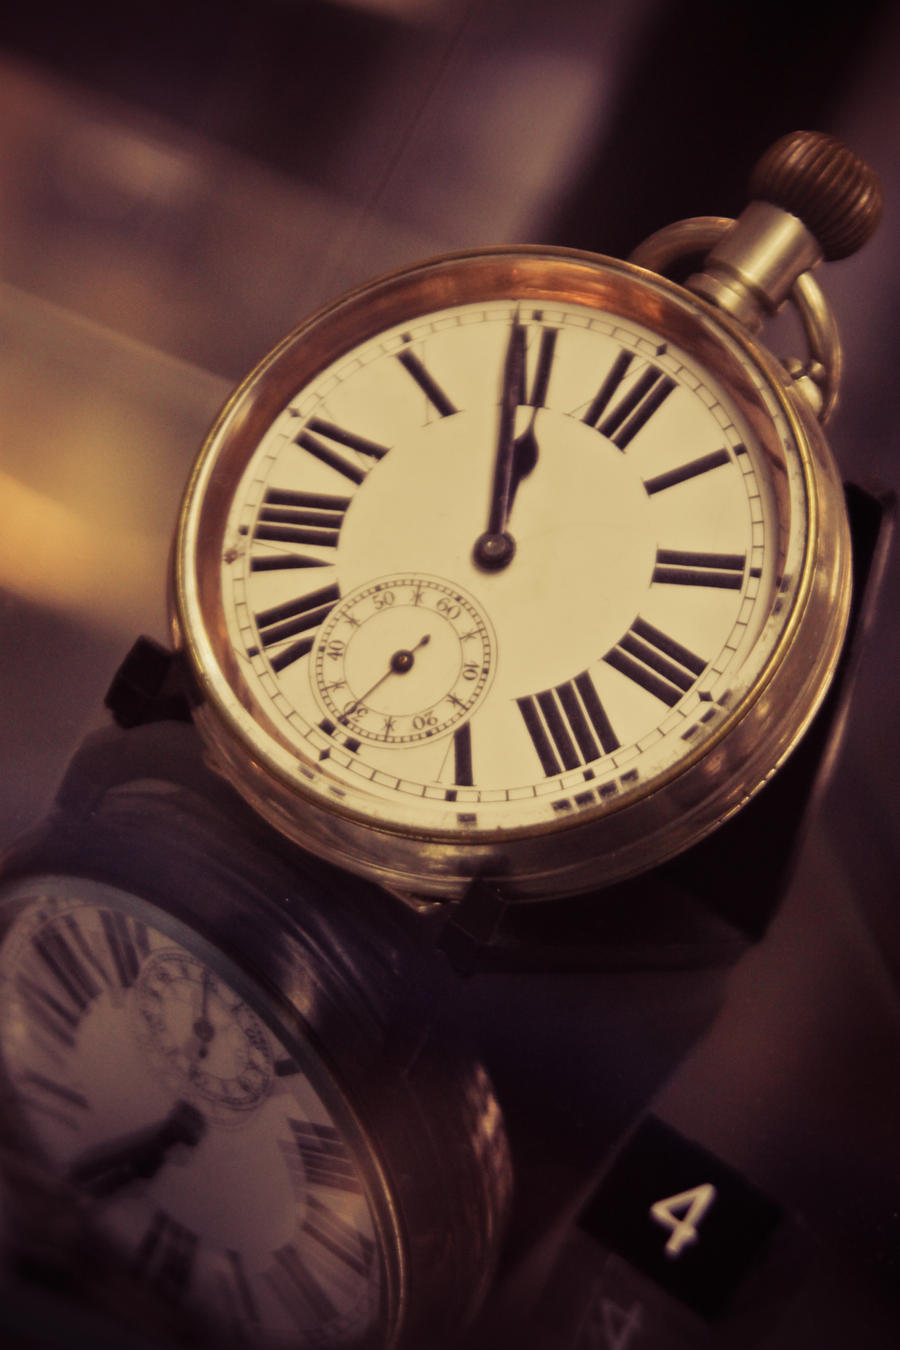 Old Pocket Watch 3 by SirBiggithBrian on DeviantArt